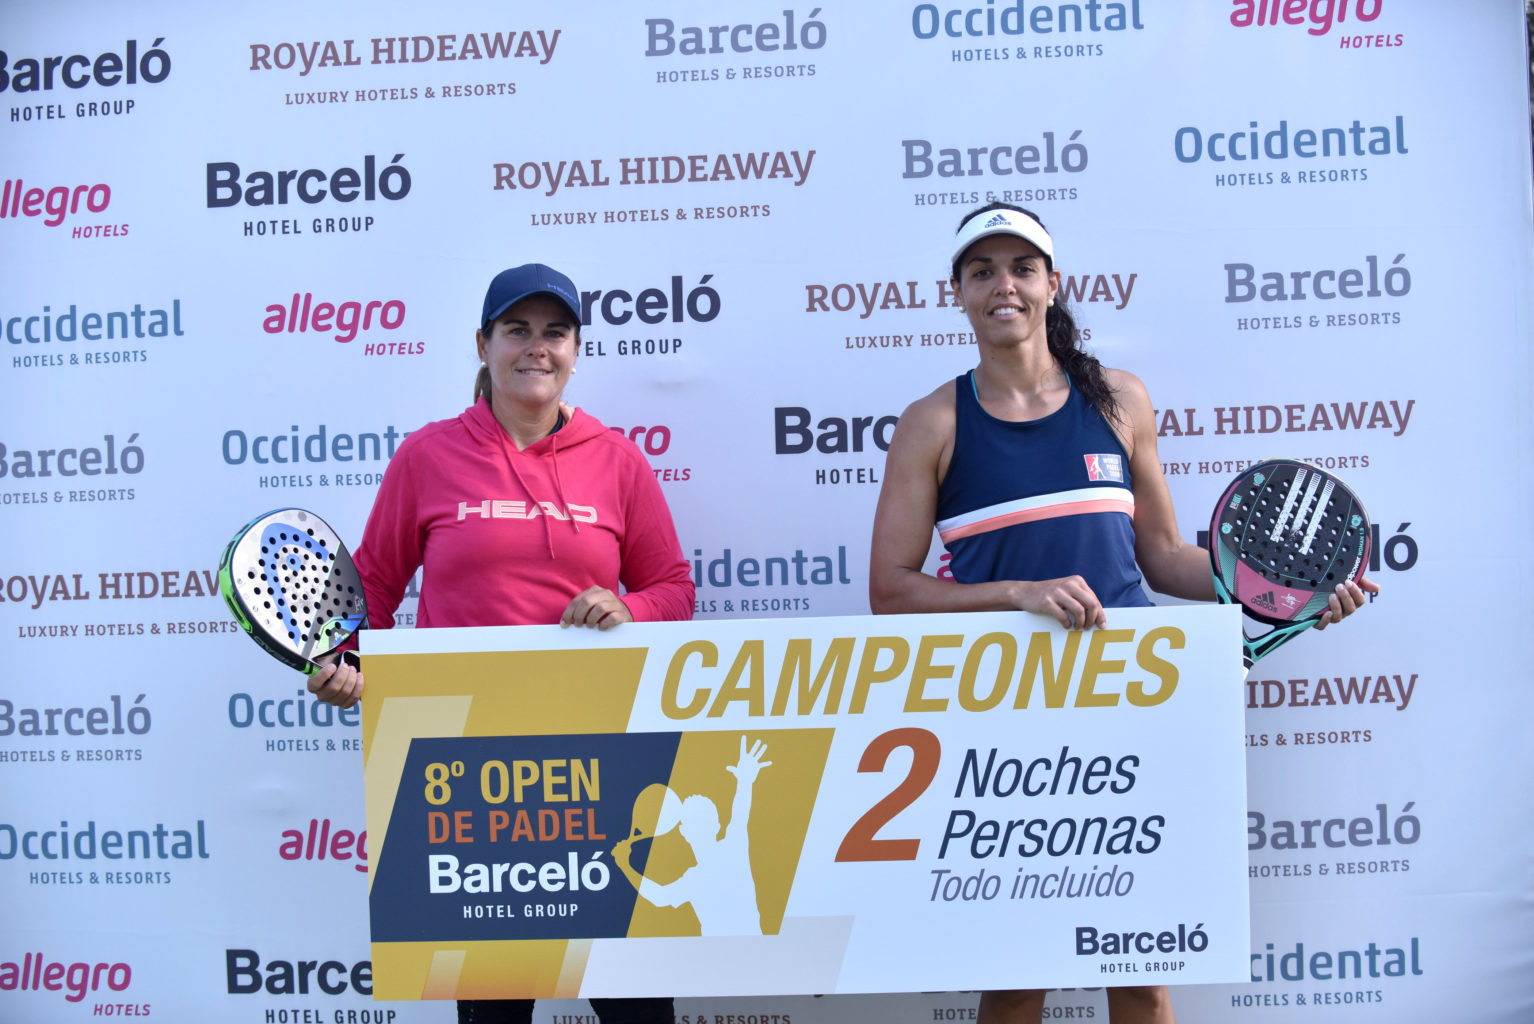 Campeonas Open de Pádel Barceló Hotel Group